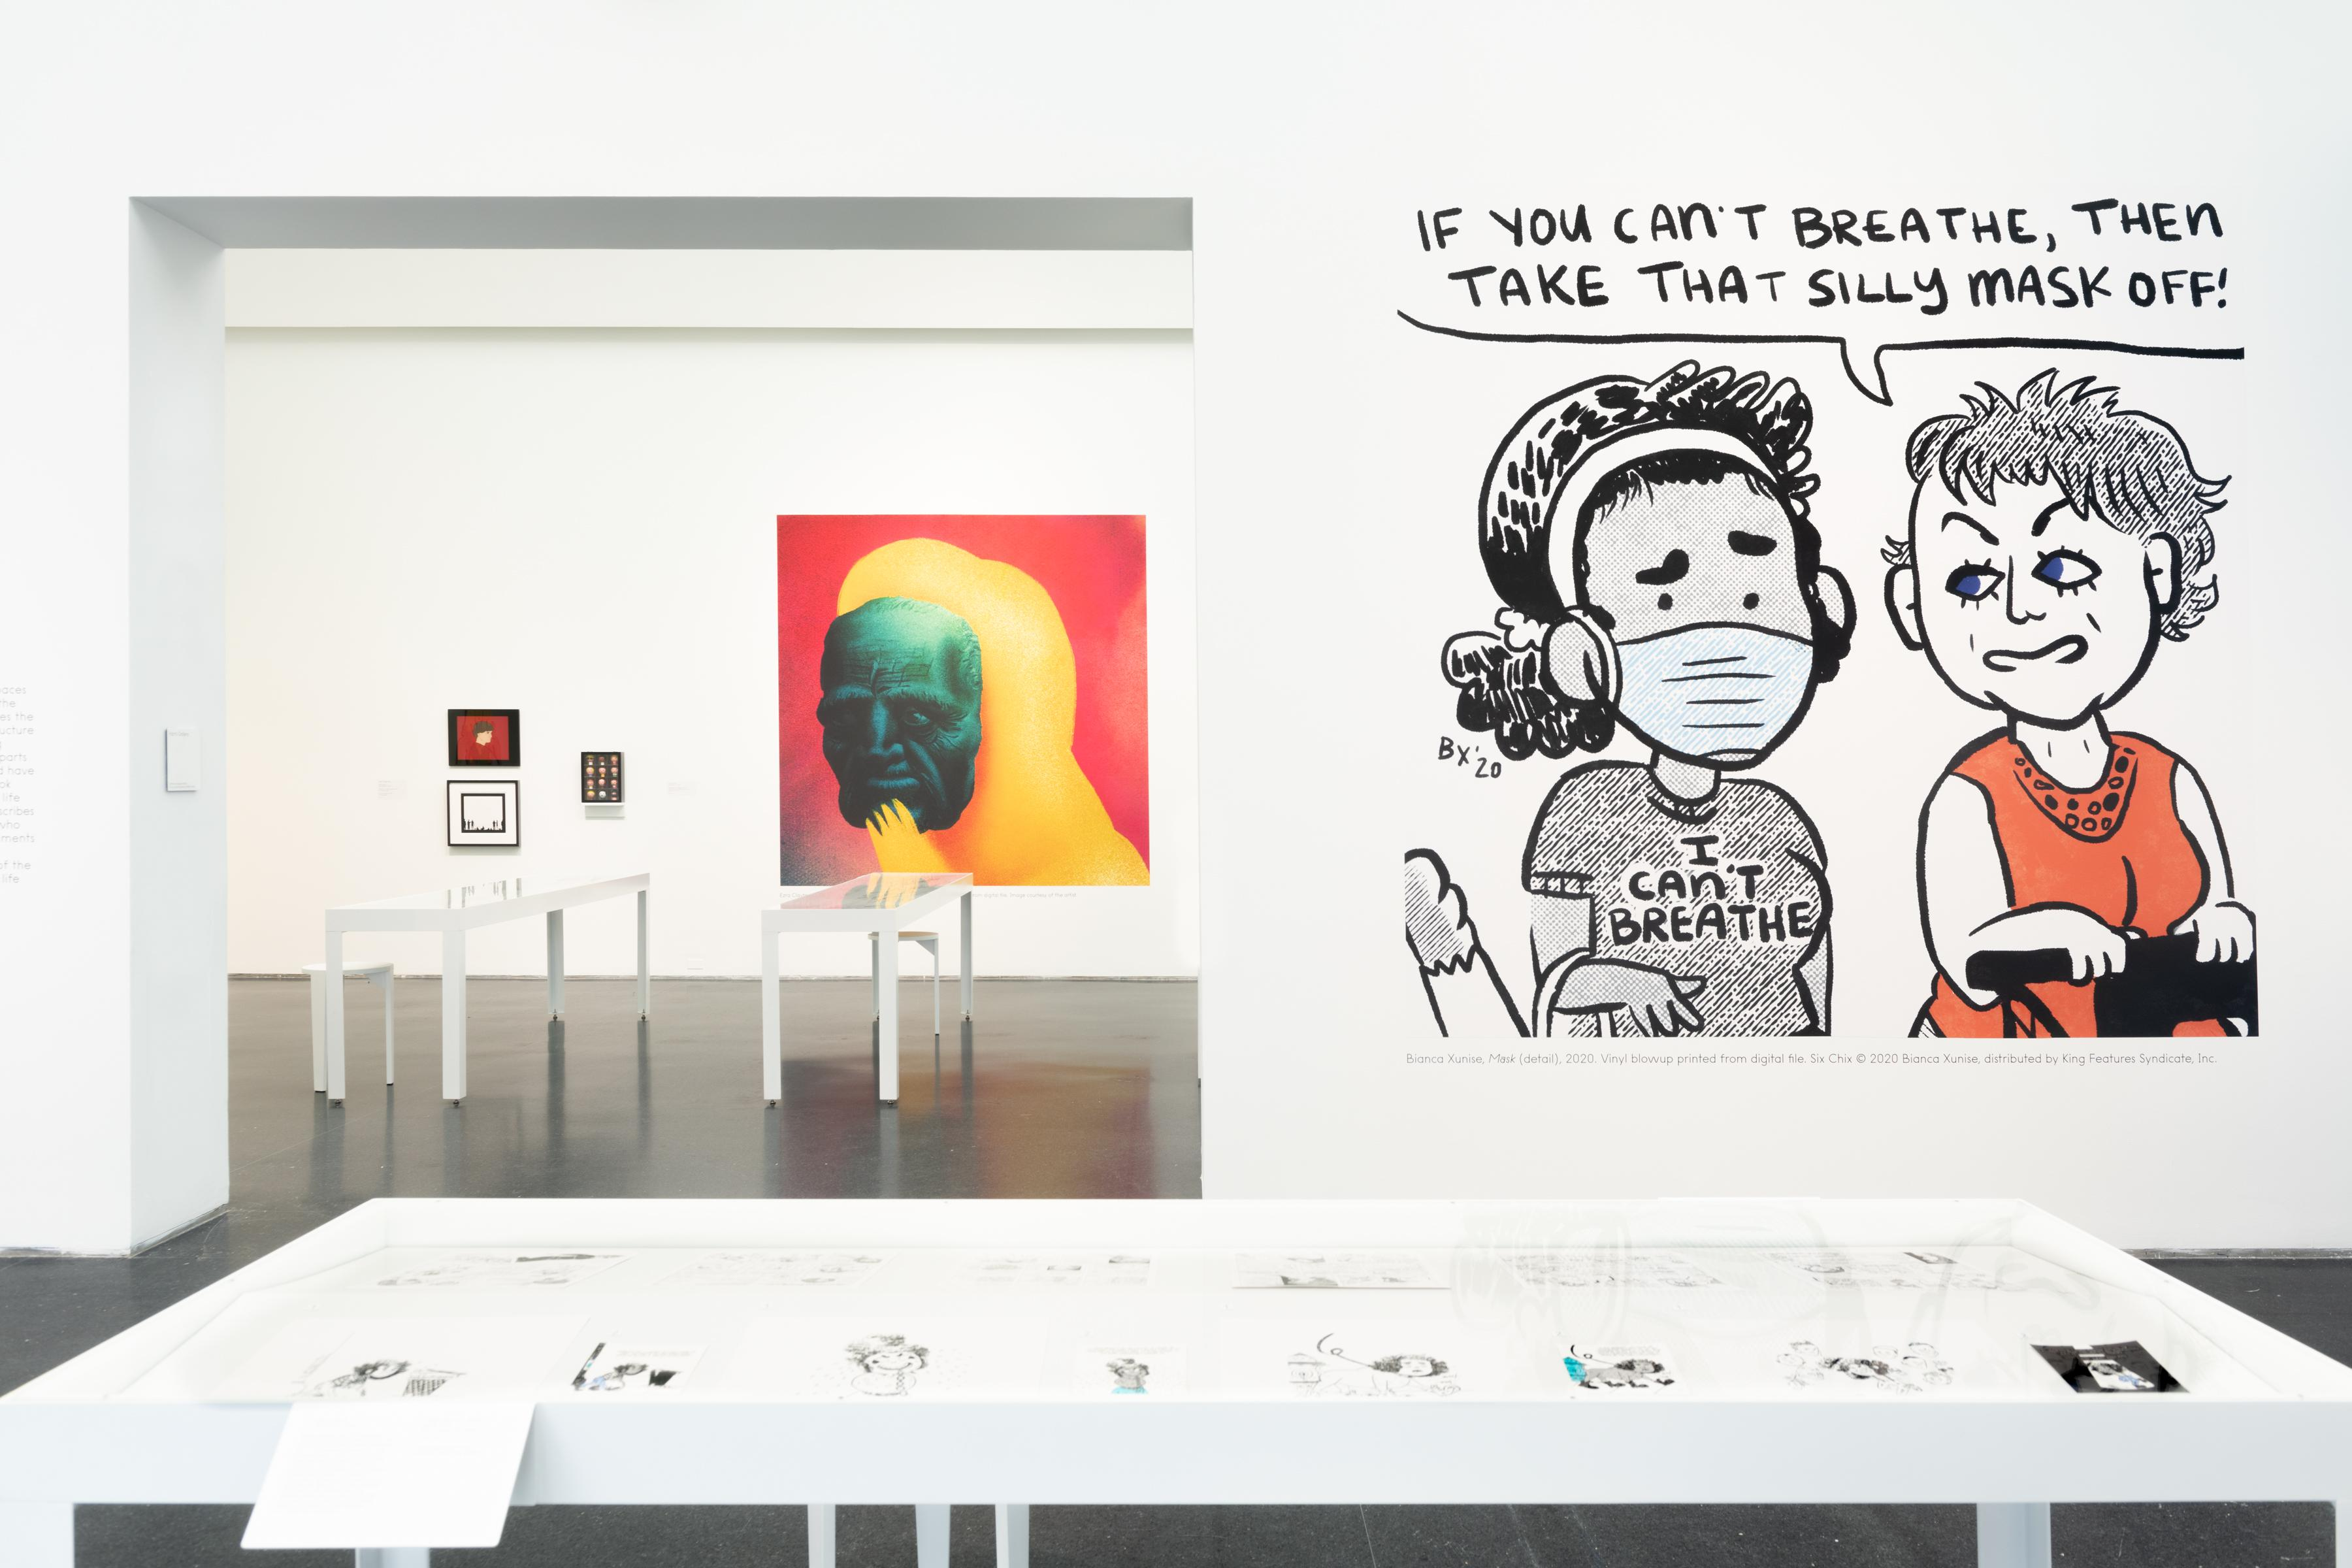 Exhibition interior with comic artwork on walls